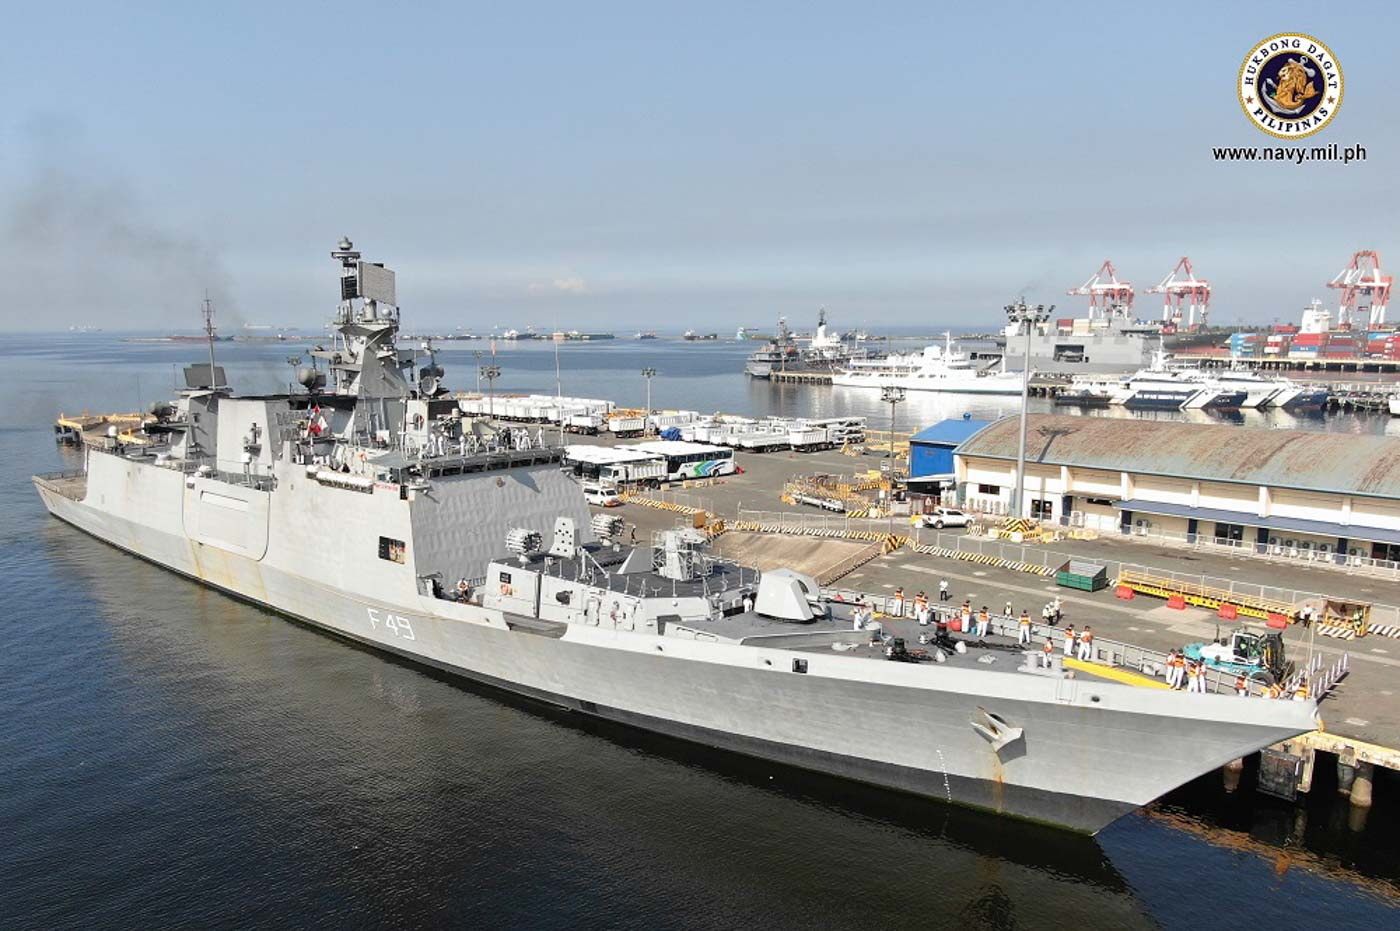 INDIAN FRIGATE. The Shivalik-class guided missile frigate INS Sahyadri is one of India's more advanced warships. Here it is docked at the Port of Manila on Wednesday, October 23, 2019. Photo from the Philippine Navy